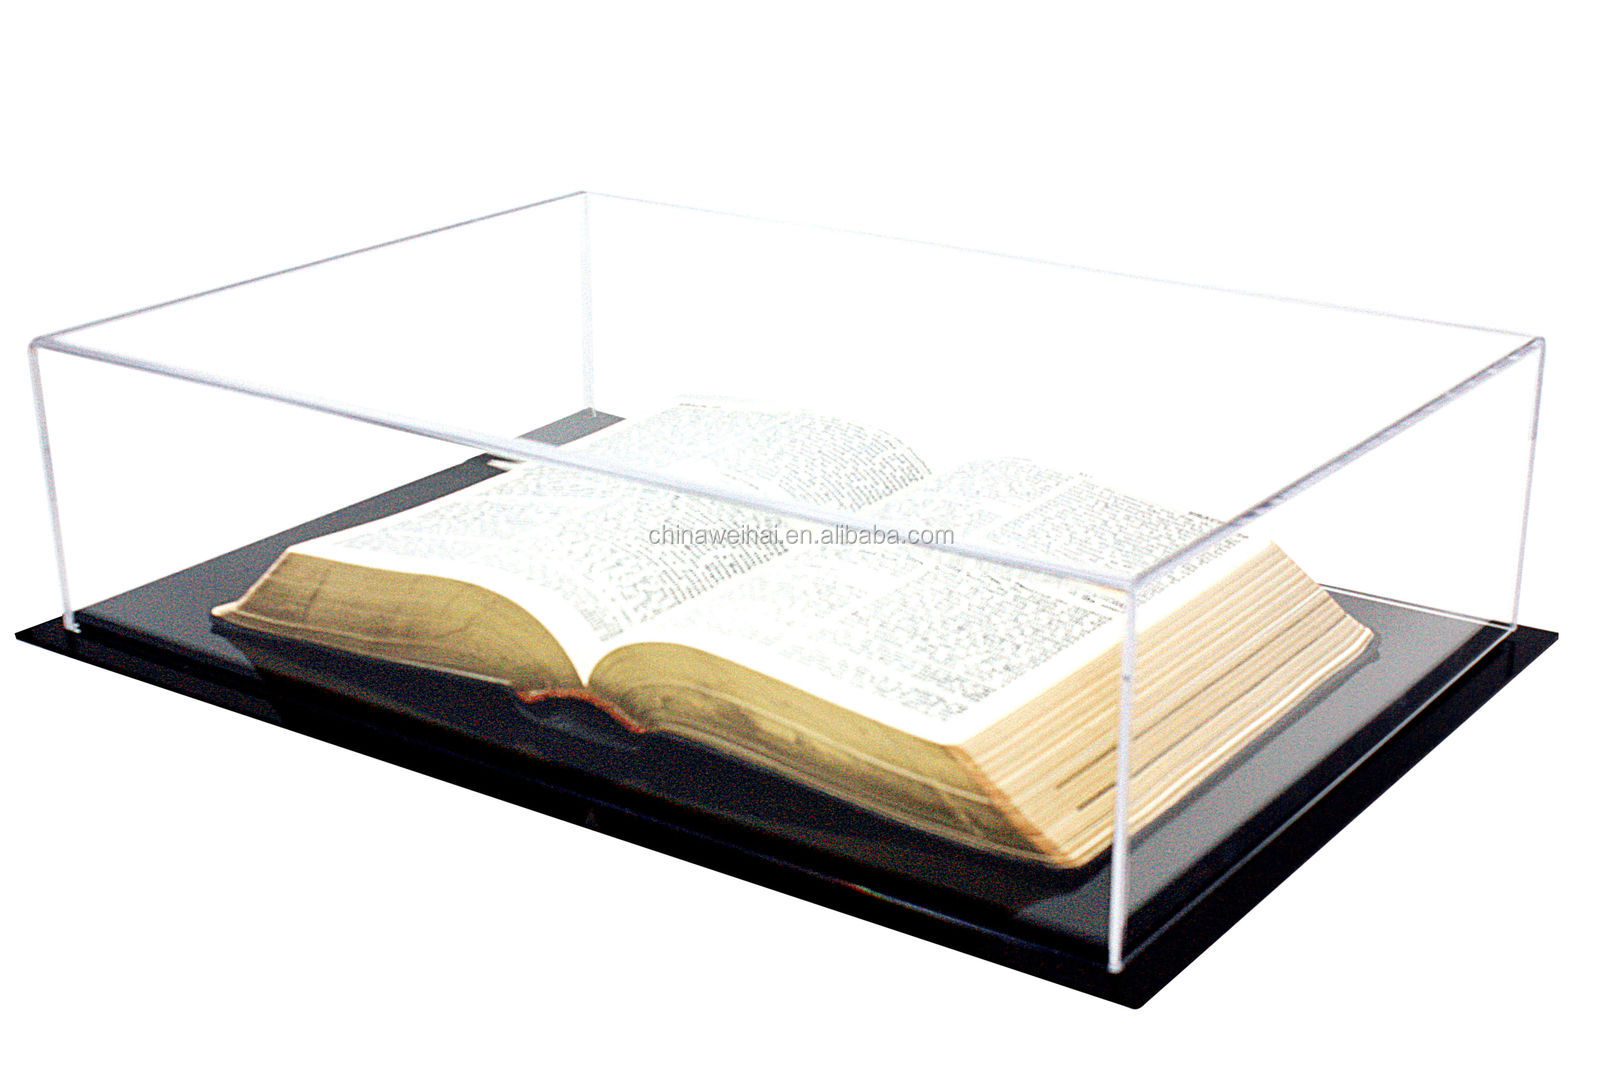 Deluxe Clear Acrylic Medium Book Display Case with UV Protection